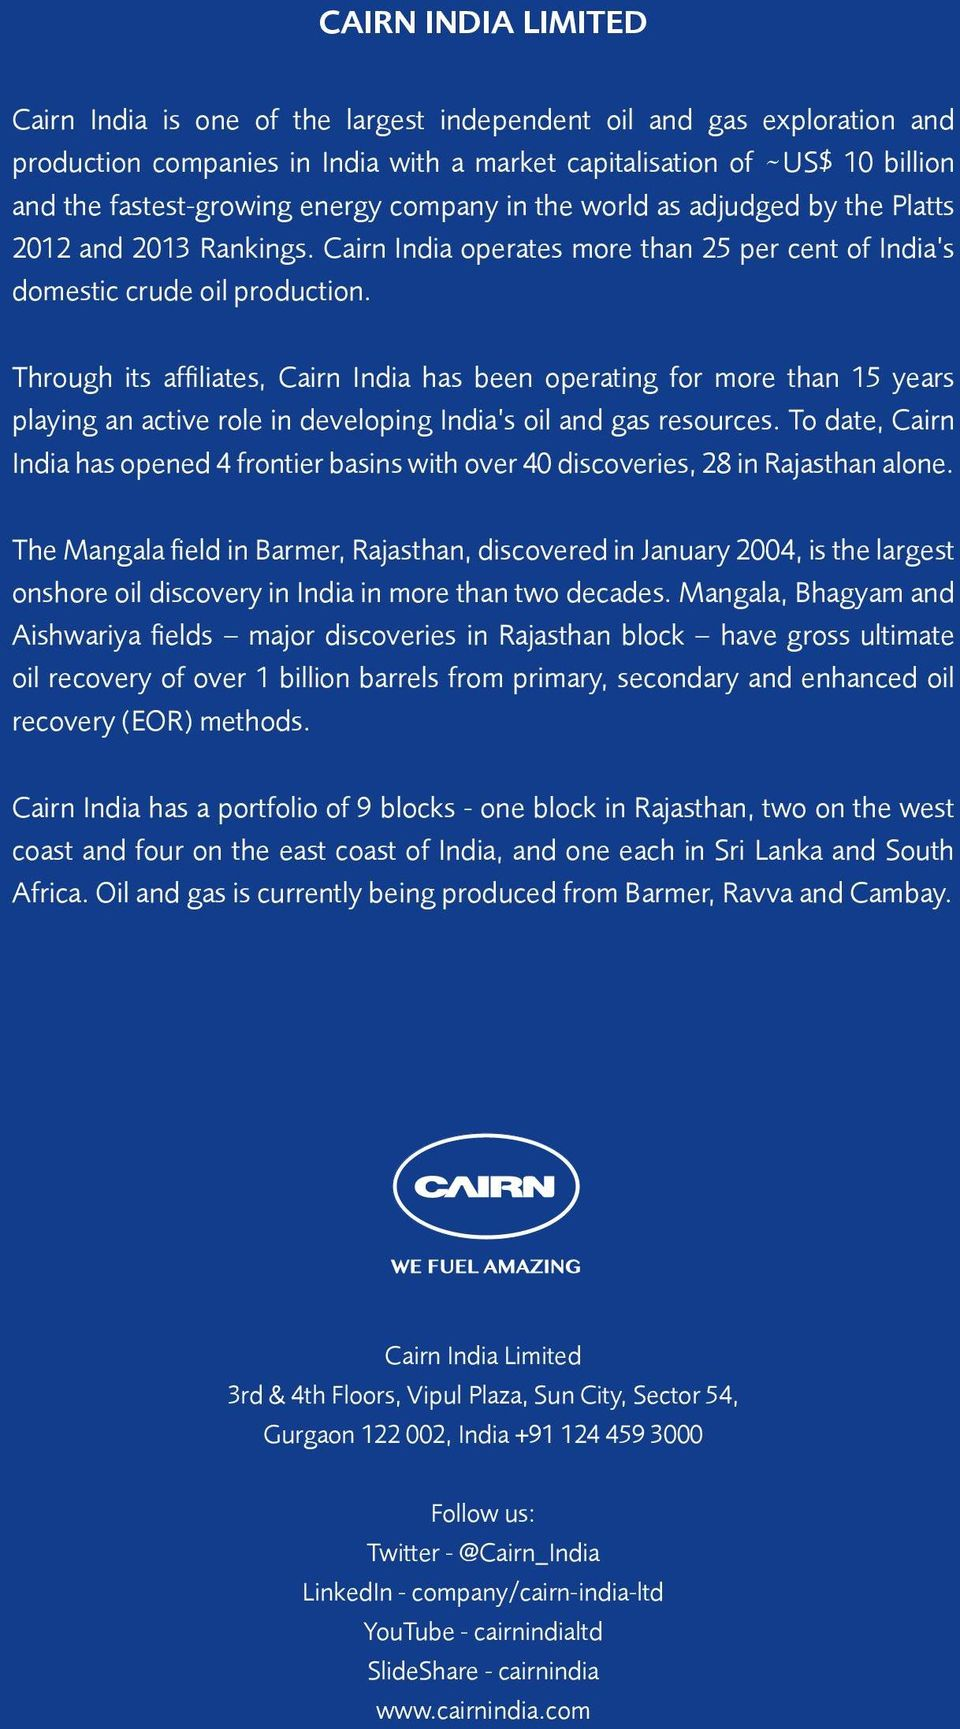 Through its affiliates, Cairn India has been operating for more than 15 years playing an active role in developing India s oil and gas resources.